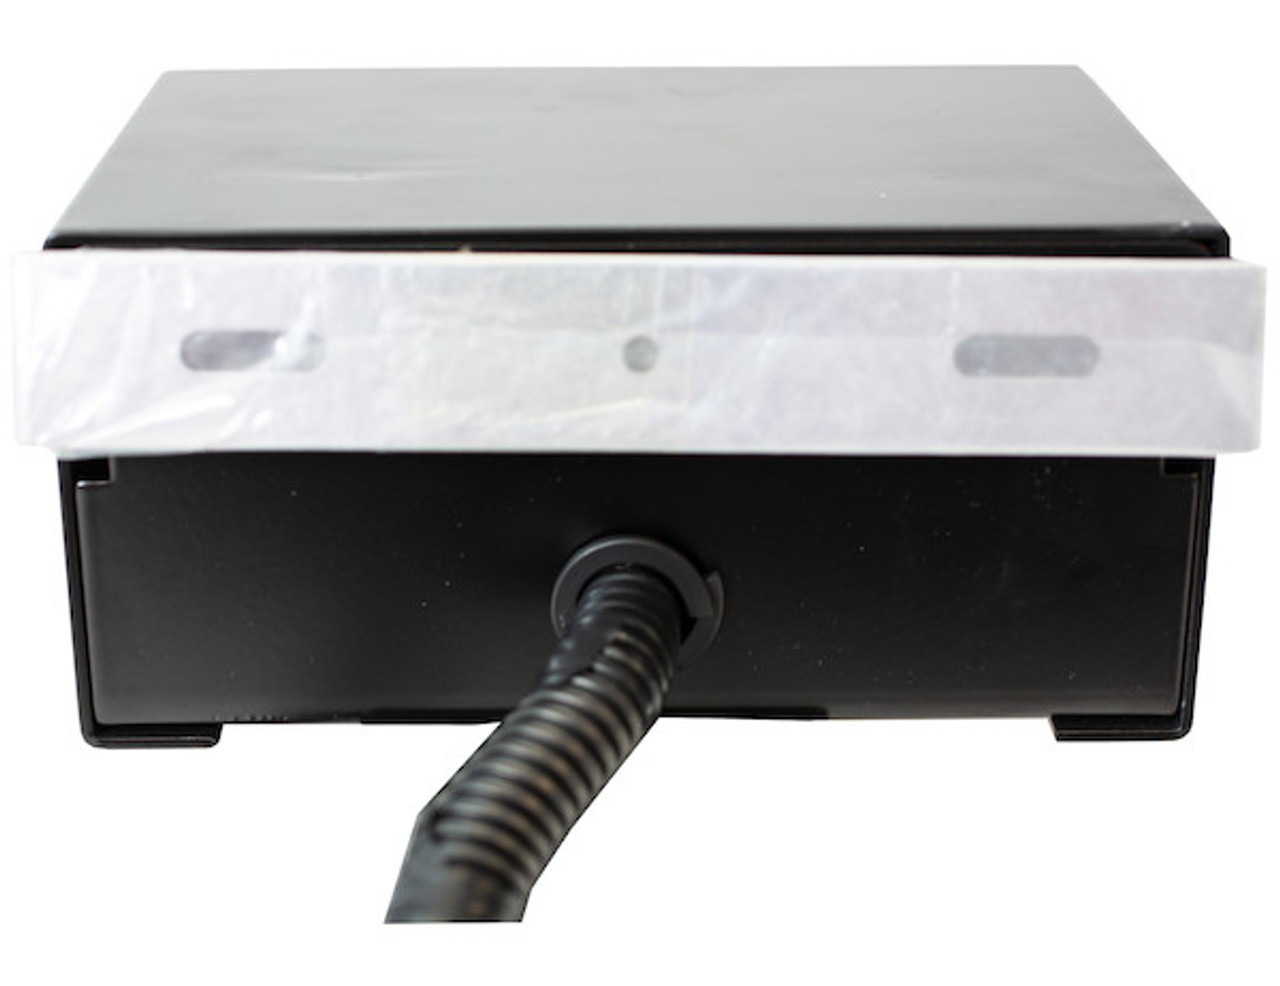 1410701 BUYERS PRODUCTS SALTDOGG GAS POWERED SPREADER CONTROLLER FOR 1400 SERIES SPREADERS (1410701) 5